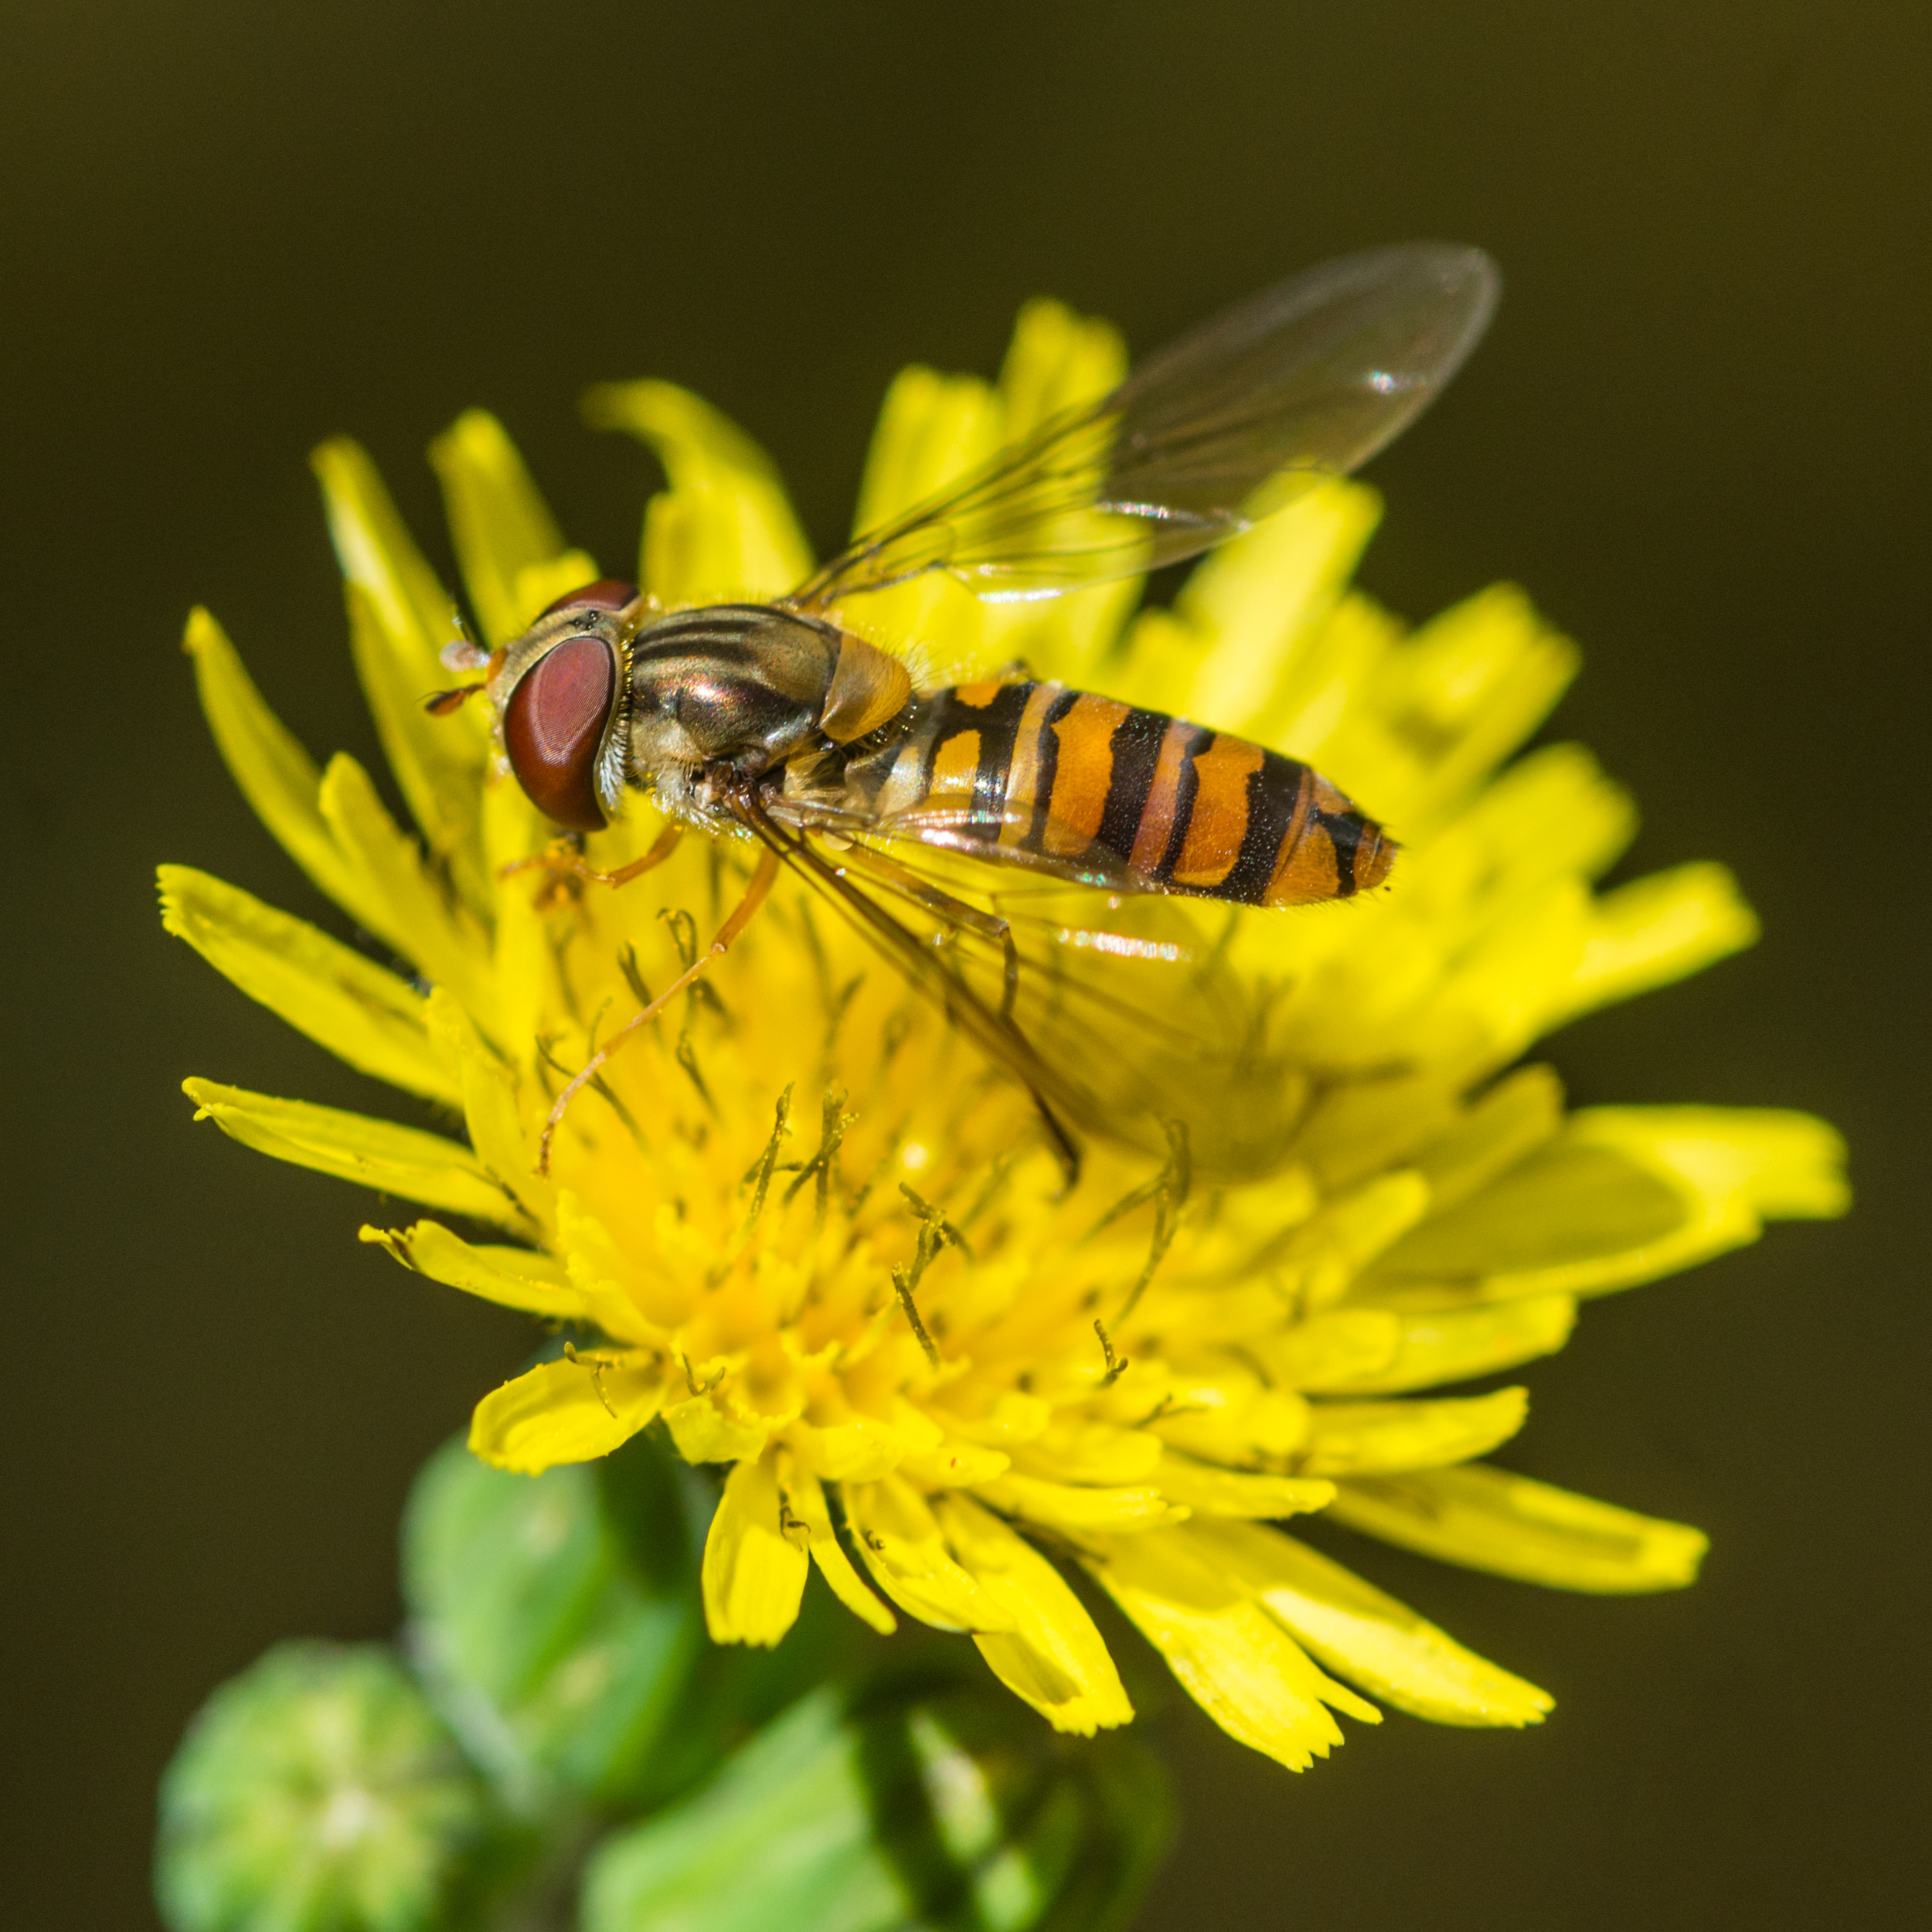 The humble hoverfly